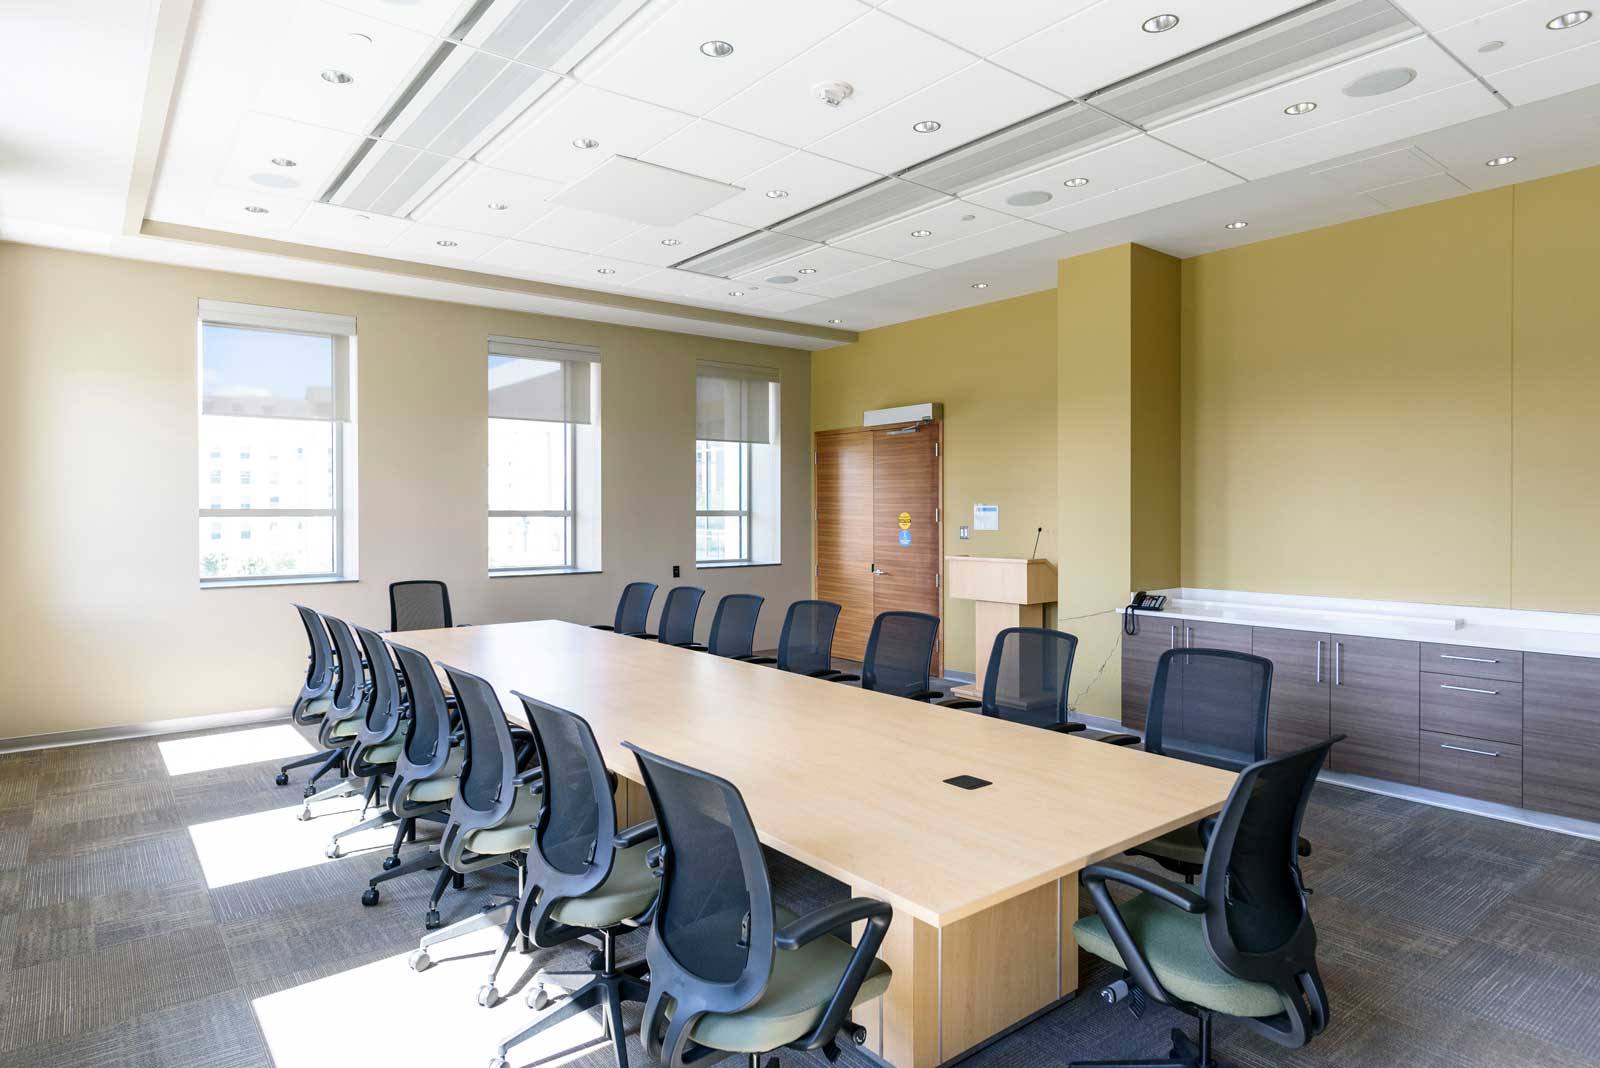 Photo of the Aspen Meeting Room in the EFB